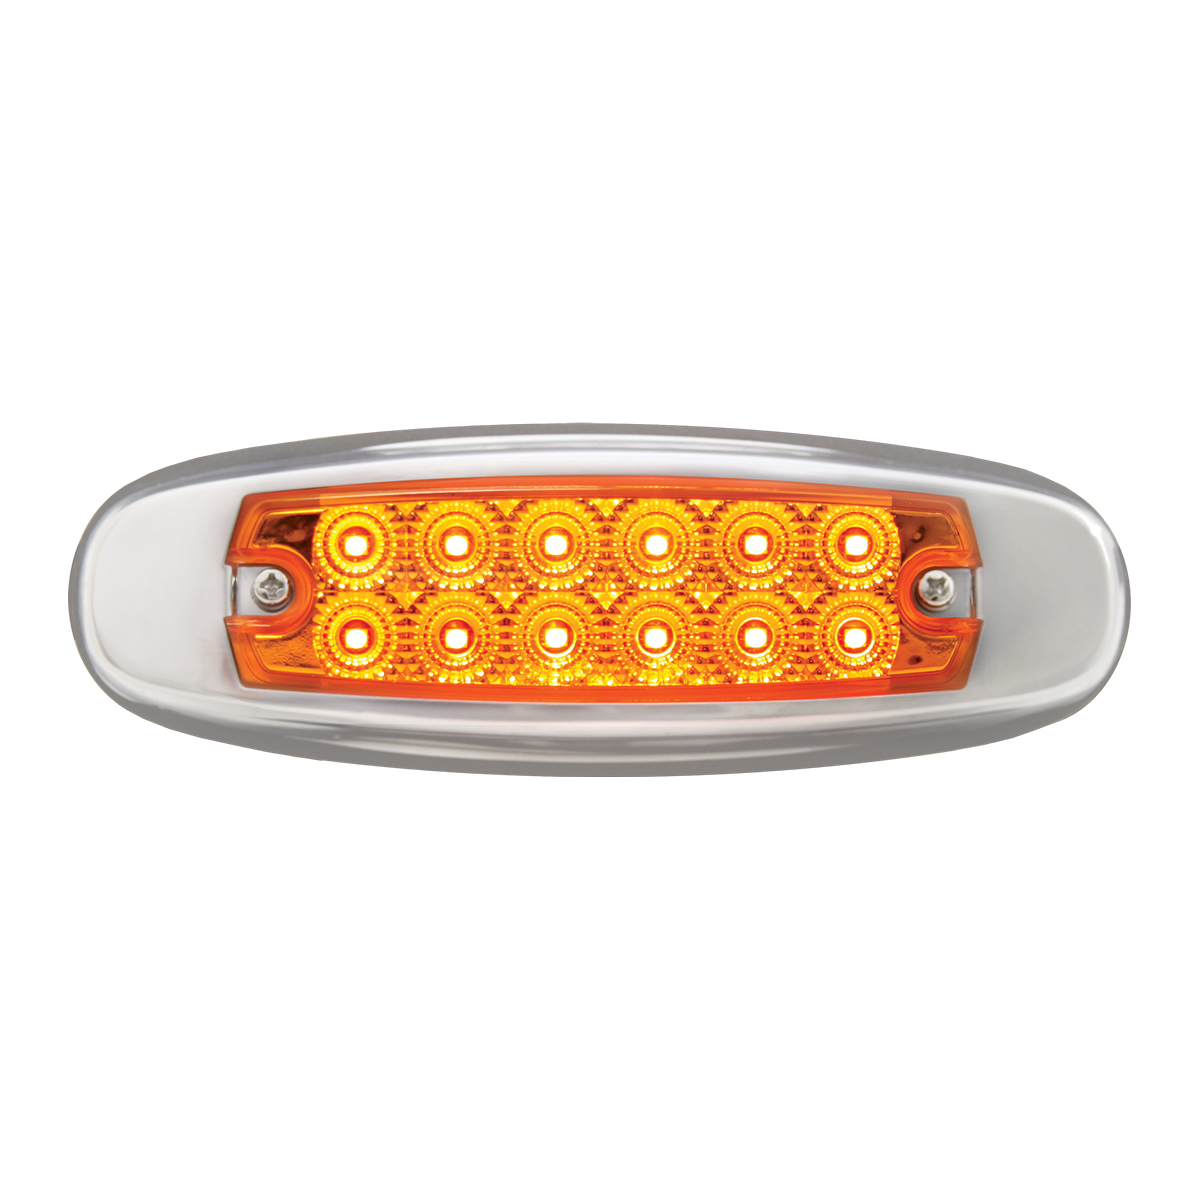 76440 Ultra Thin Dual Function Spyder LED Light w/ Stainless Steel Bezel